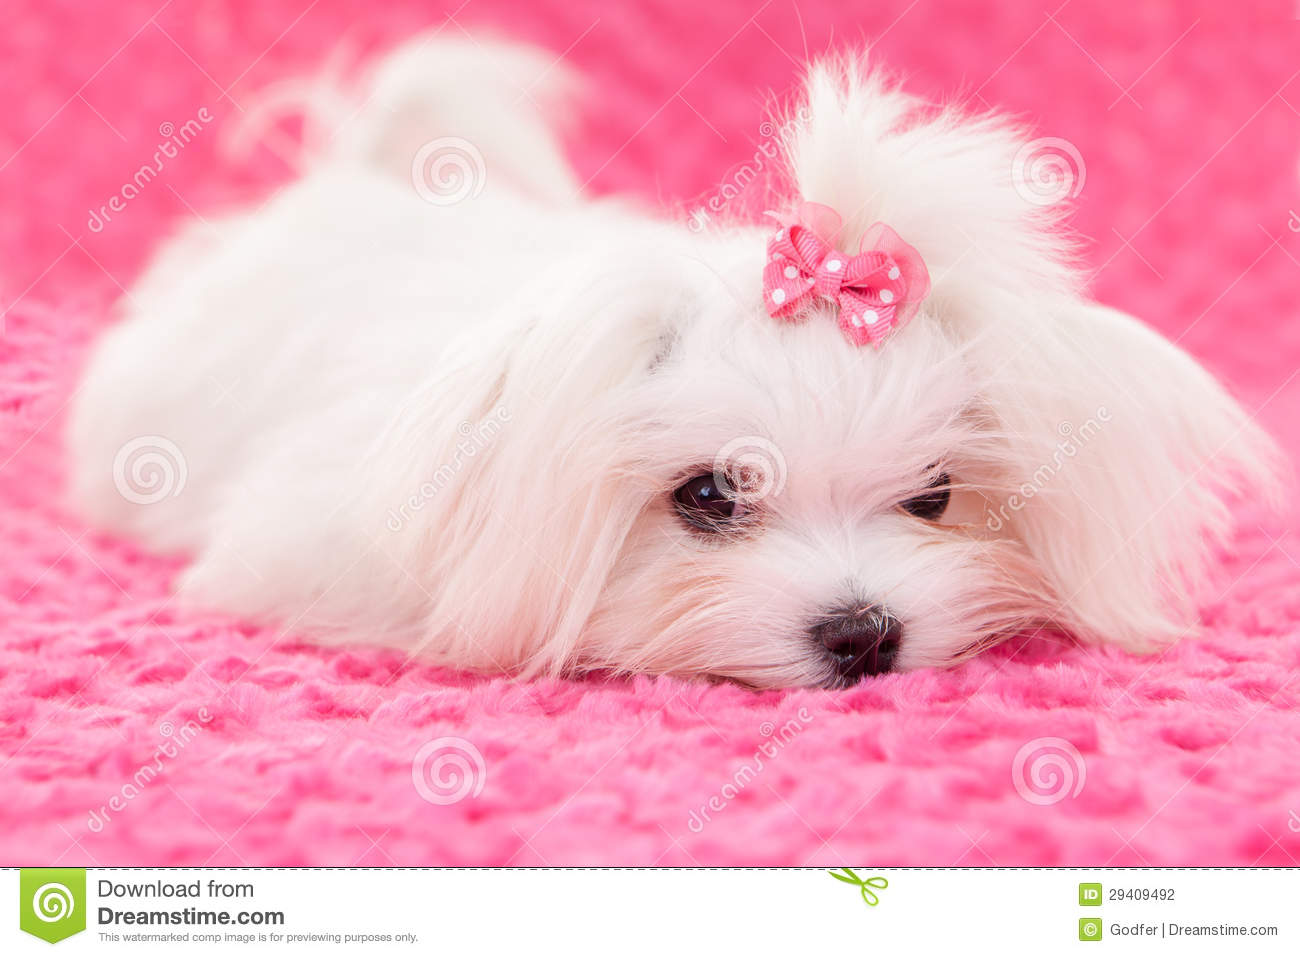 Cane maltese di razza fotografia stock immagine di for Razza maltese